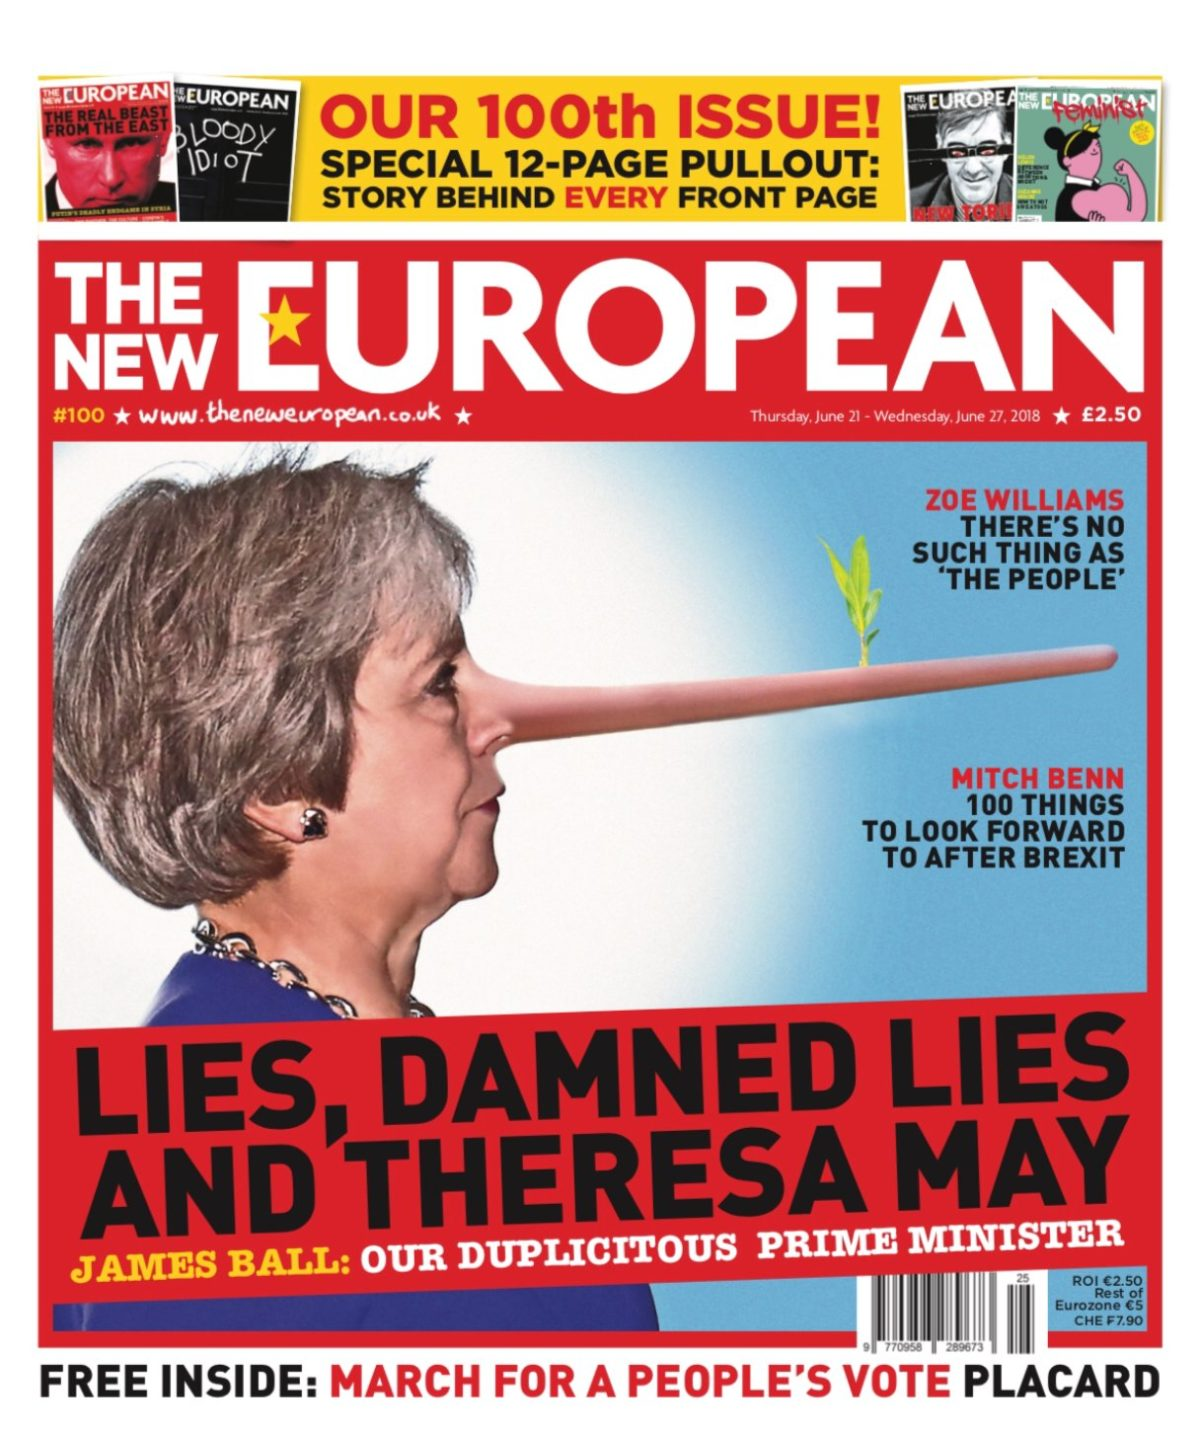 The New European publishes 100th issue after starting as 'pop-up' paper only planned for four-week run